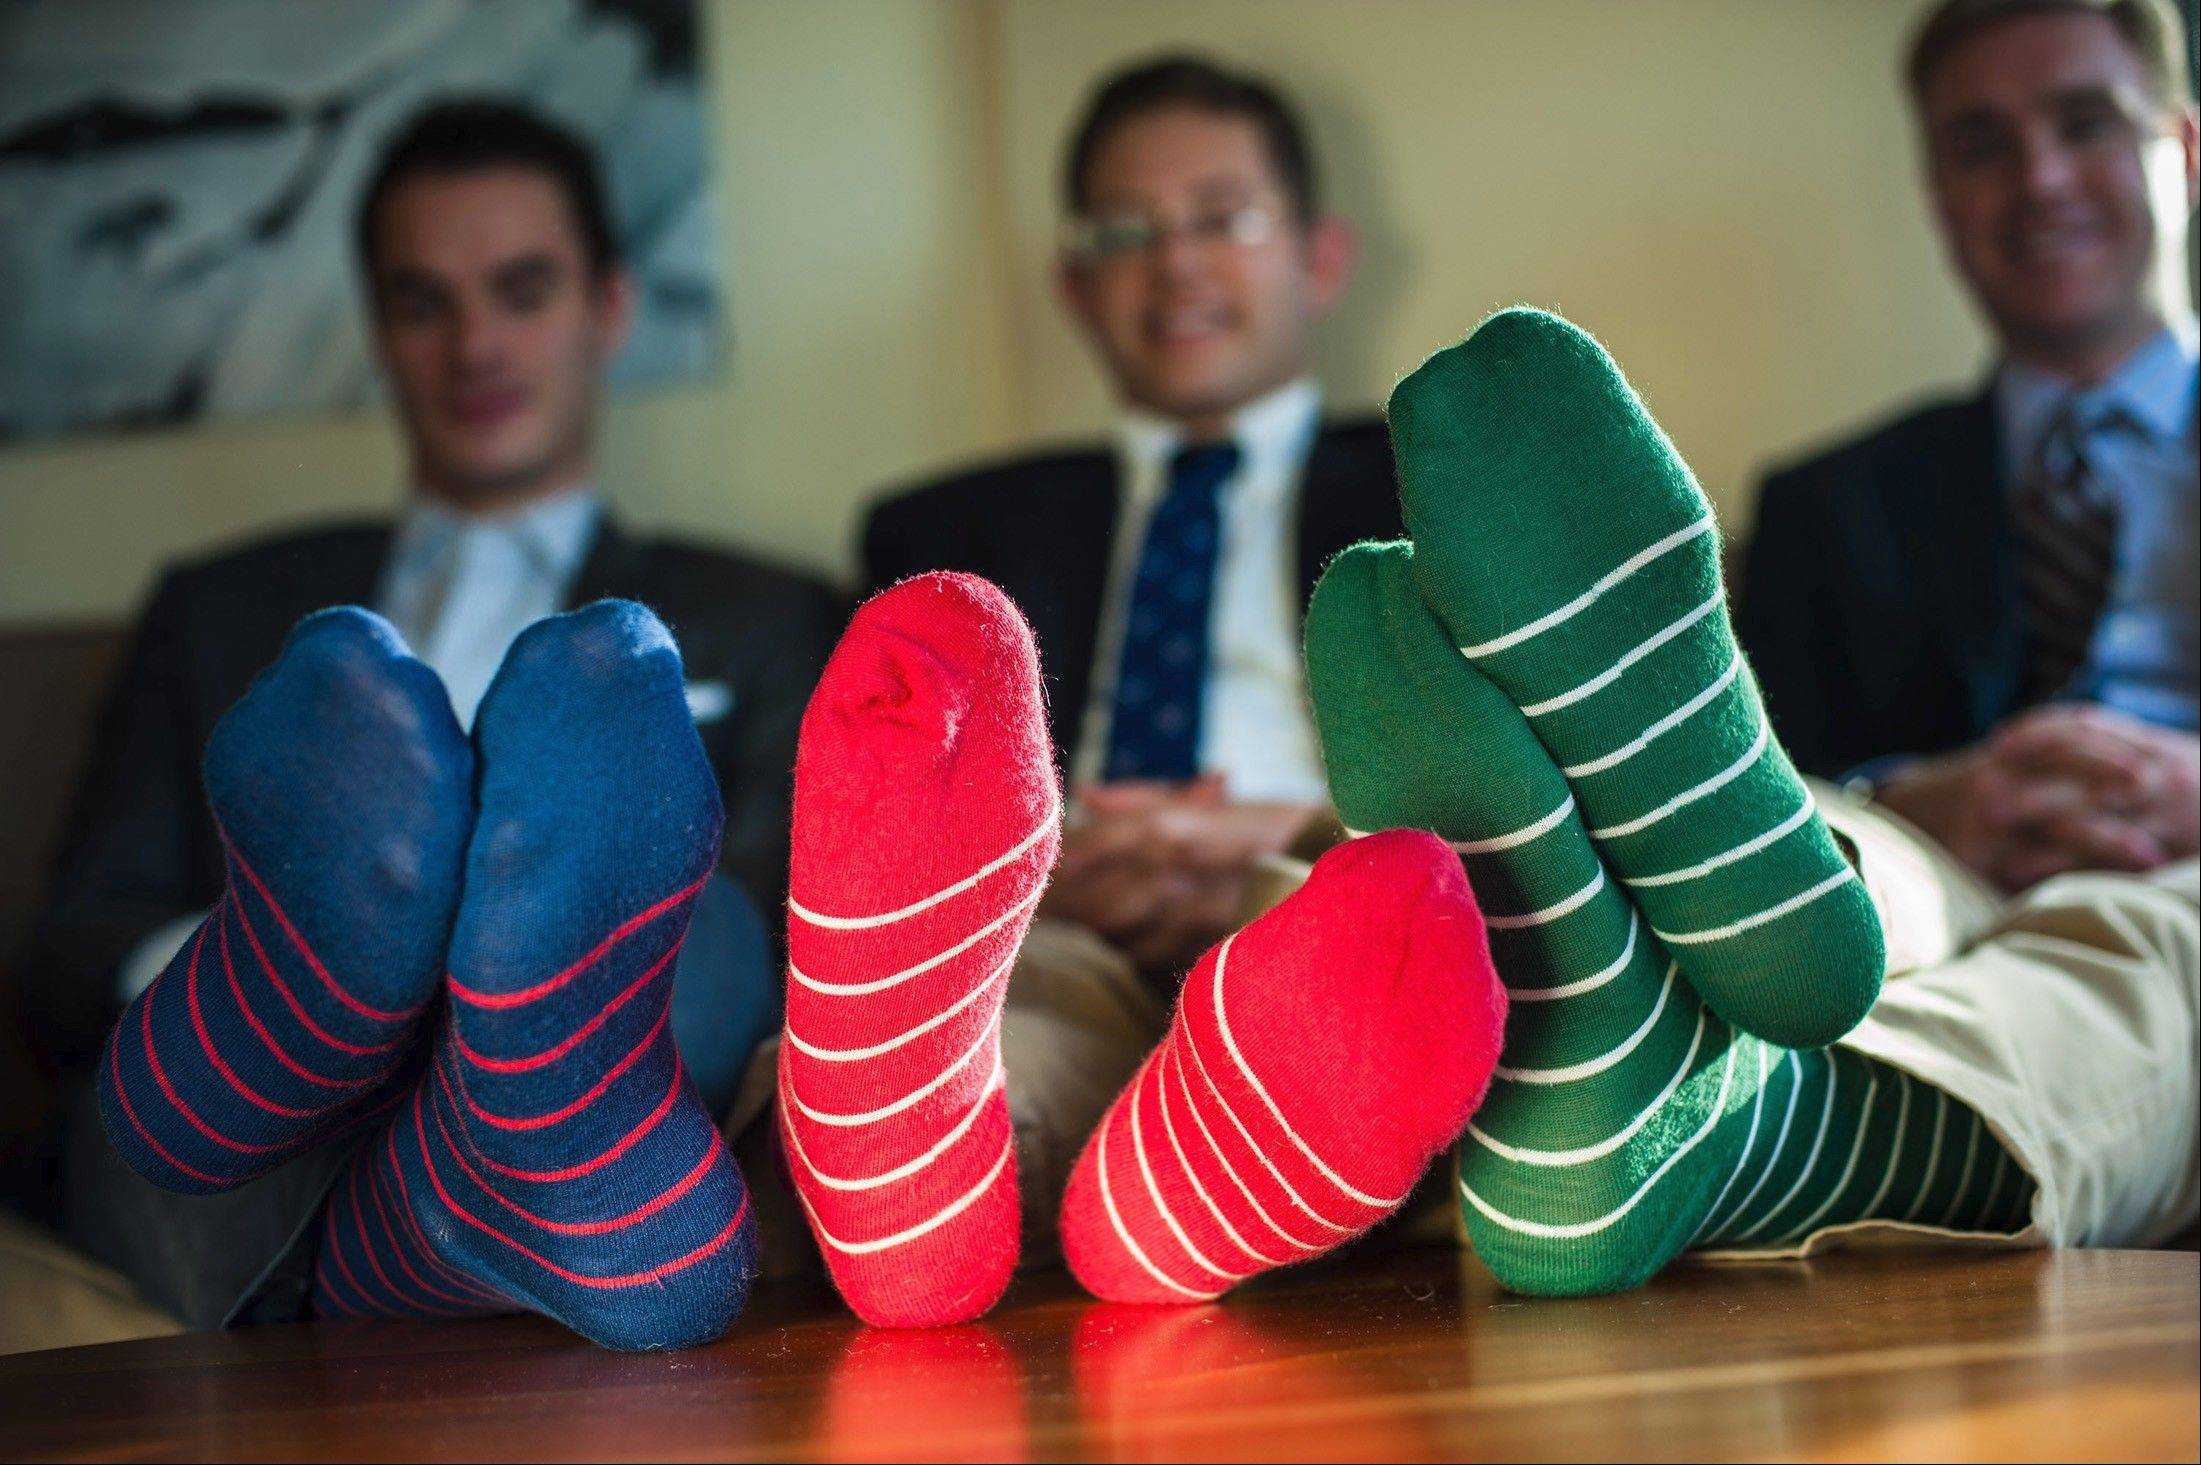 Friends and federal workers, Turner Swicegood, left, Joshua Steinman and Jay Gaul are co-owners of Penance Hall, a startup producing luxury men's socks.